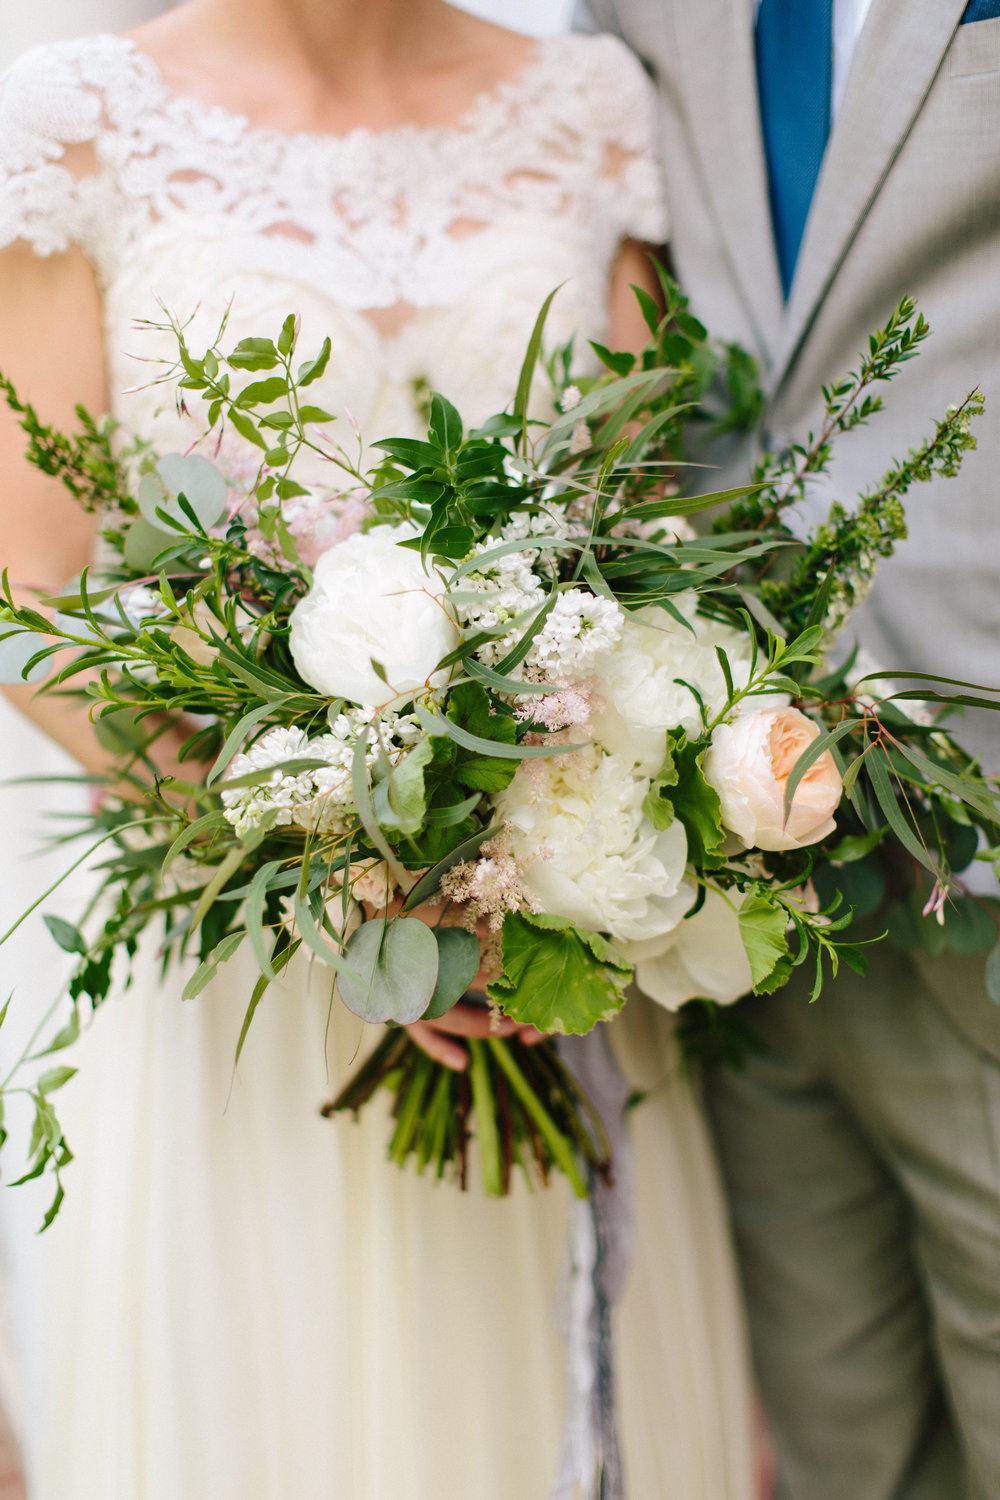 Loose Spring bridal bouquet with peonies